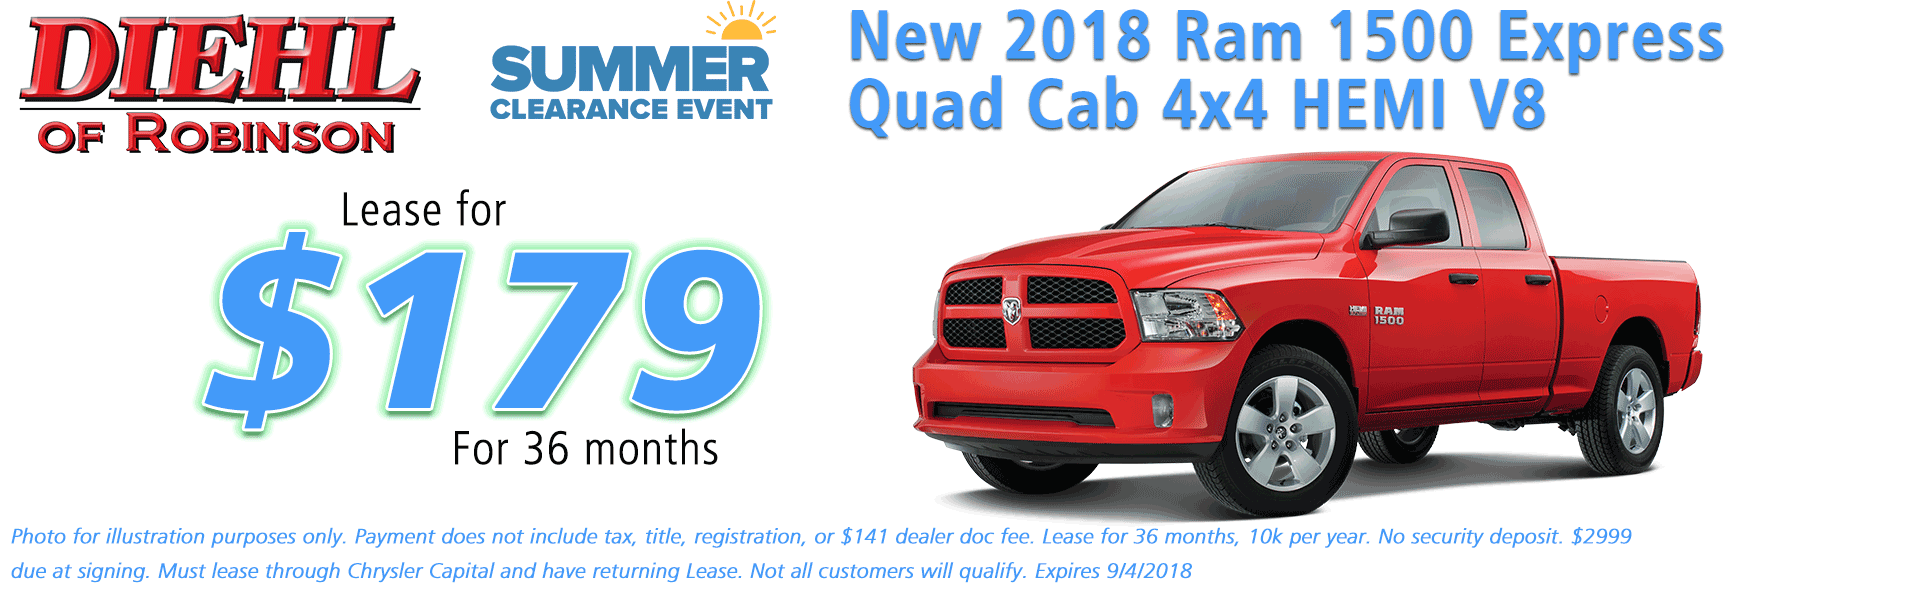 Diehl of Robinson, Robinson Twp, PA Chrysler Jeep Dodge Ram sales service parts and accessories NEW 2018 RAM 1500 EXPRESS QUAD CAB 4X4 6'4